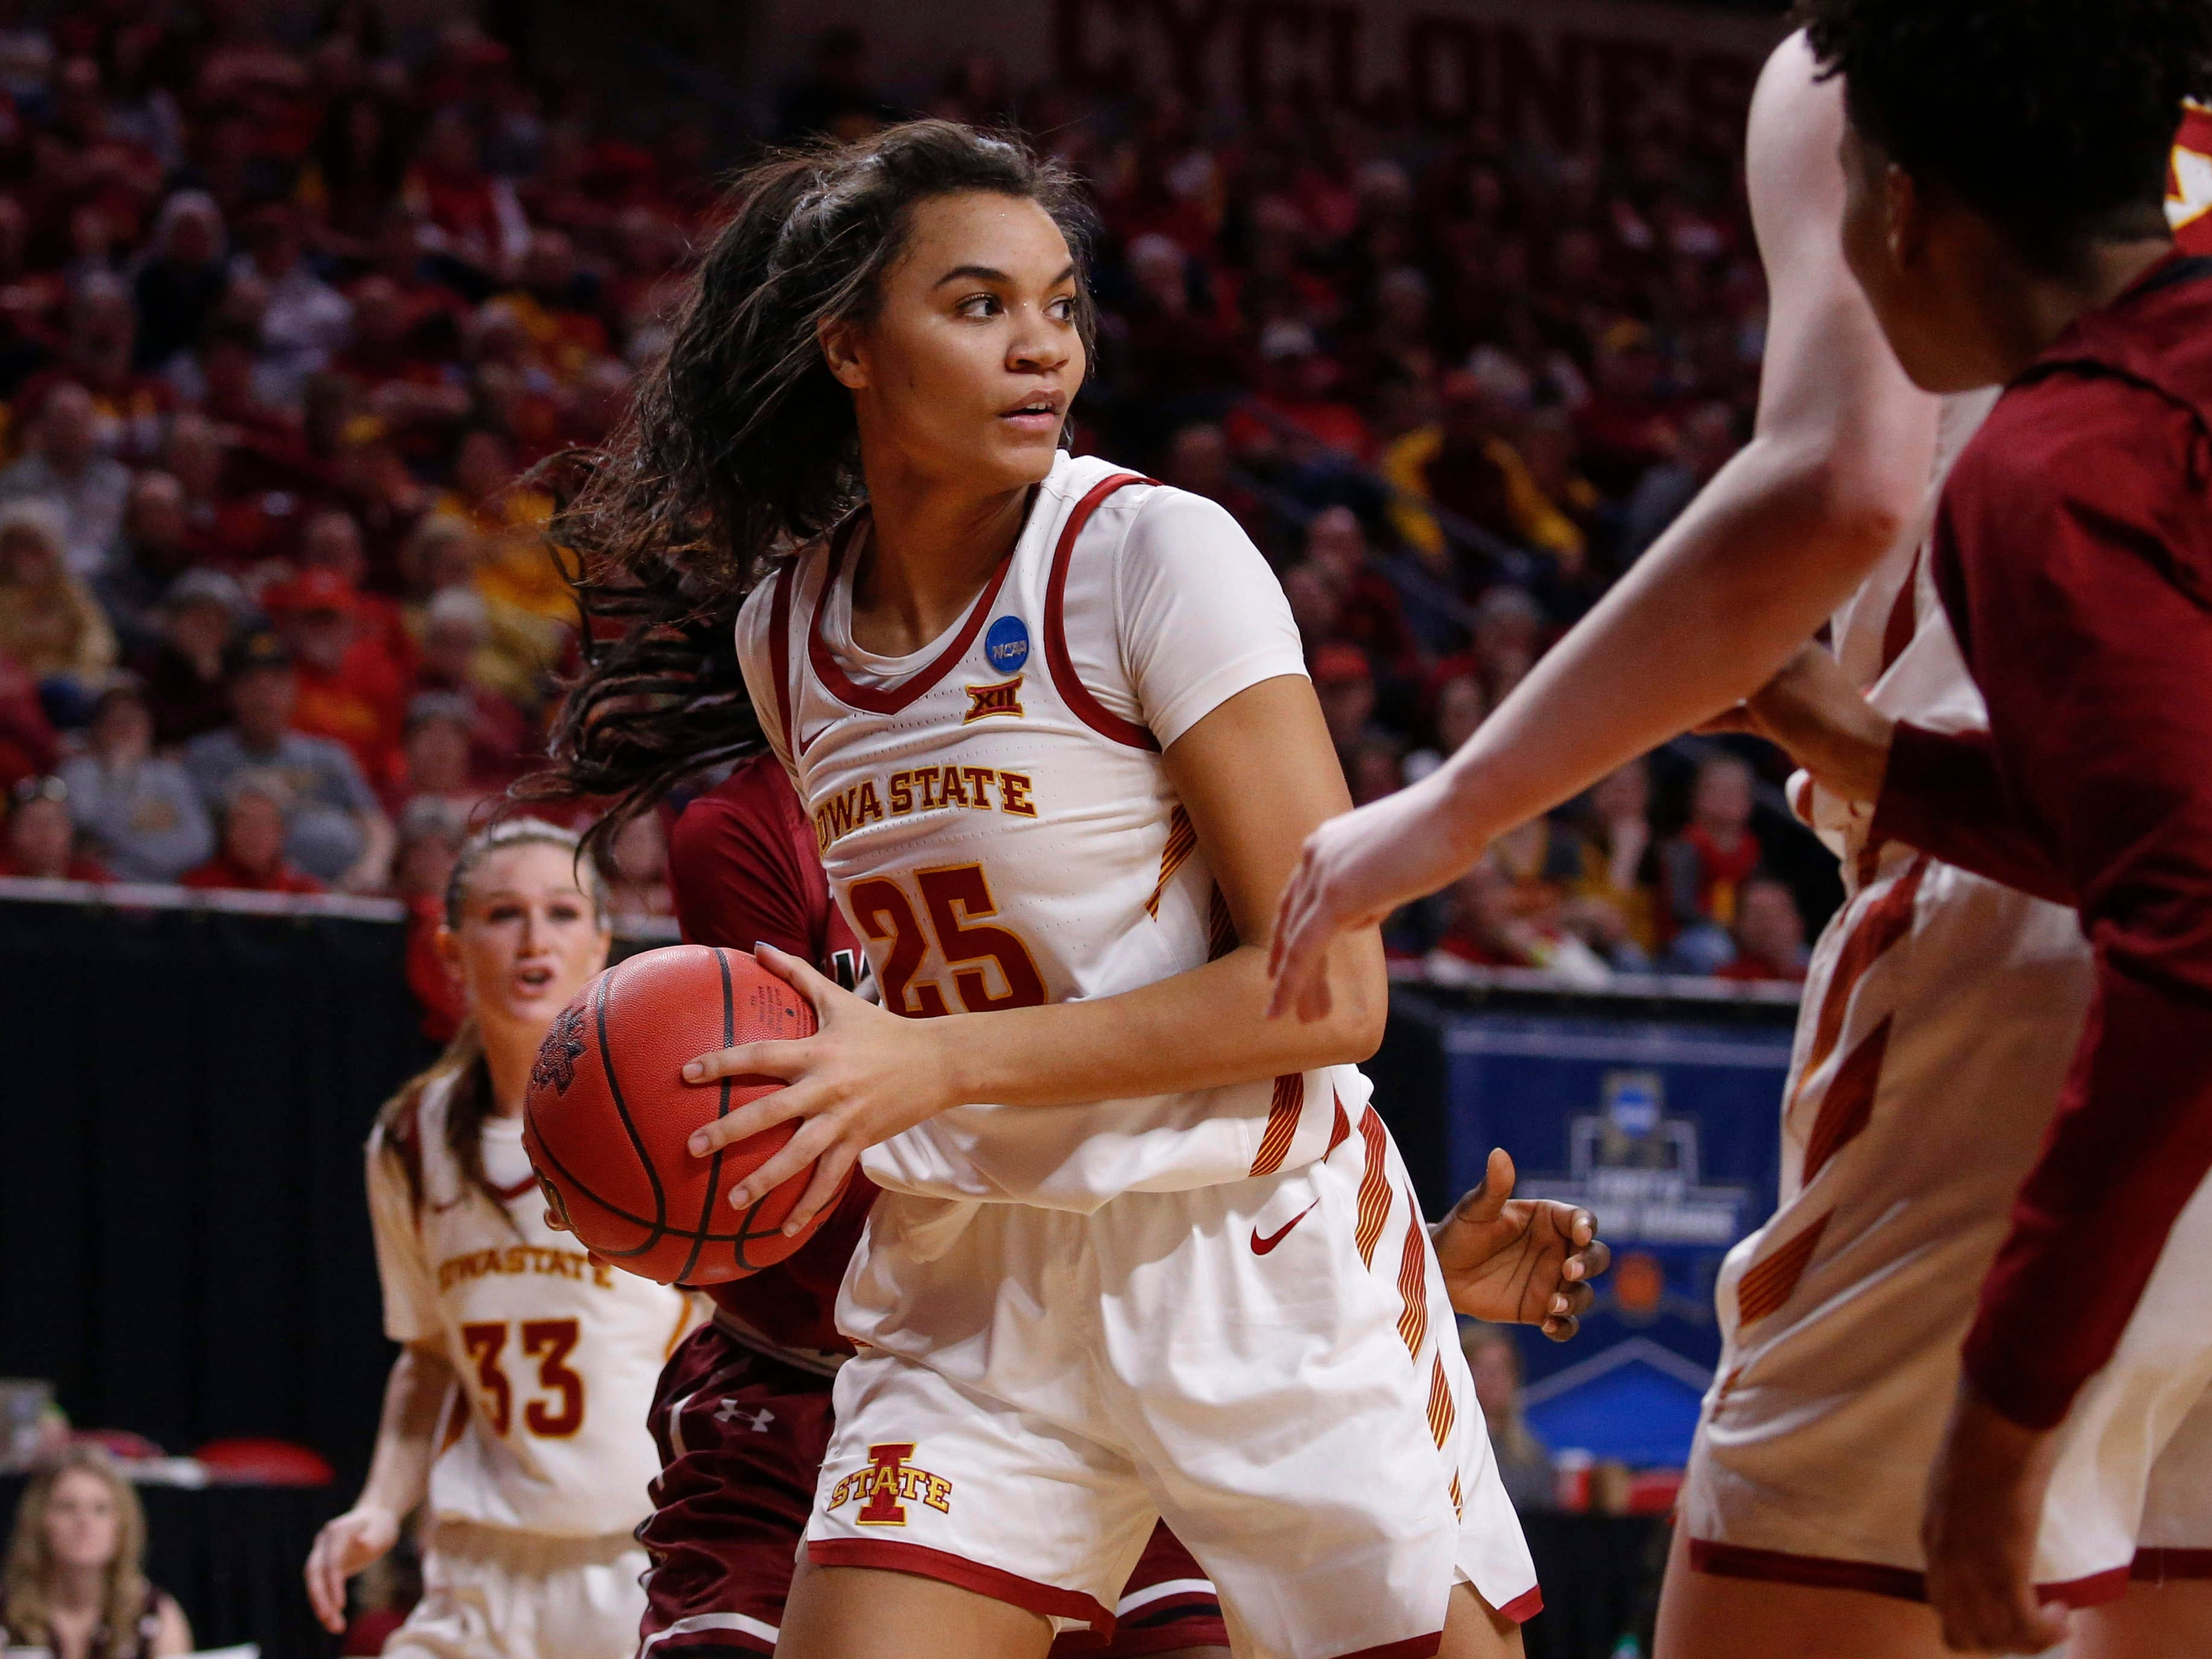 Iowa State sophomore Kristin Scott pulls in a rebound against New Mexico State on Saturday, March 23, 2019, at Hilton Coliseum in Ames.